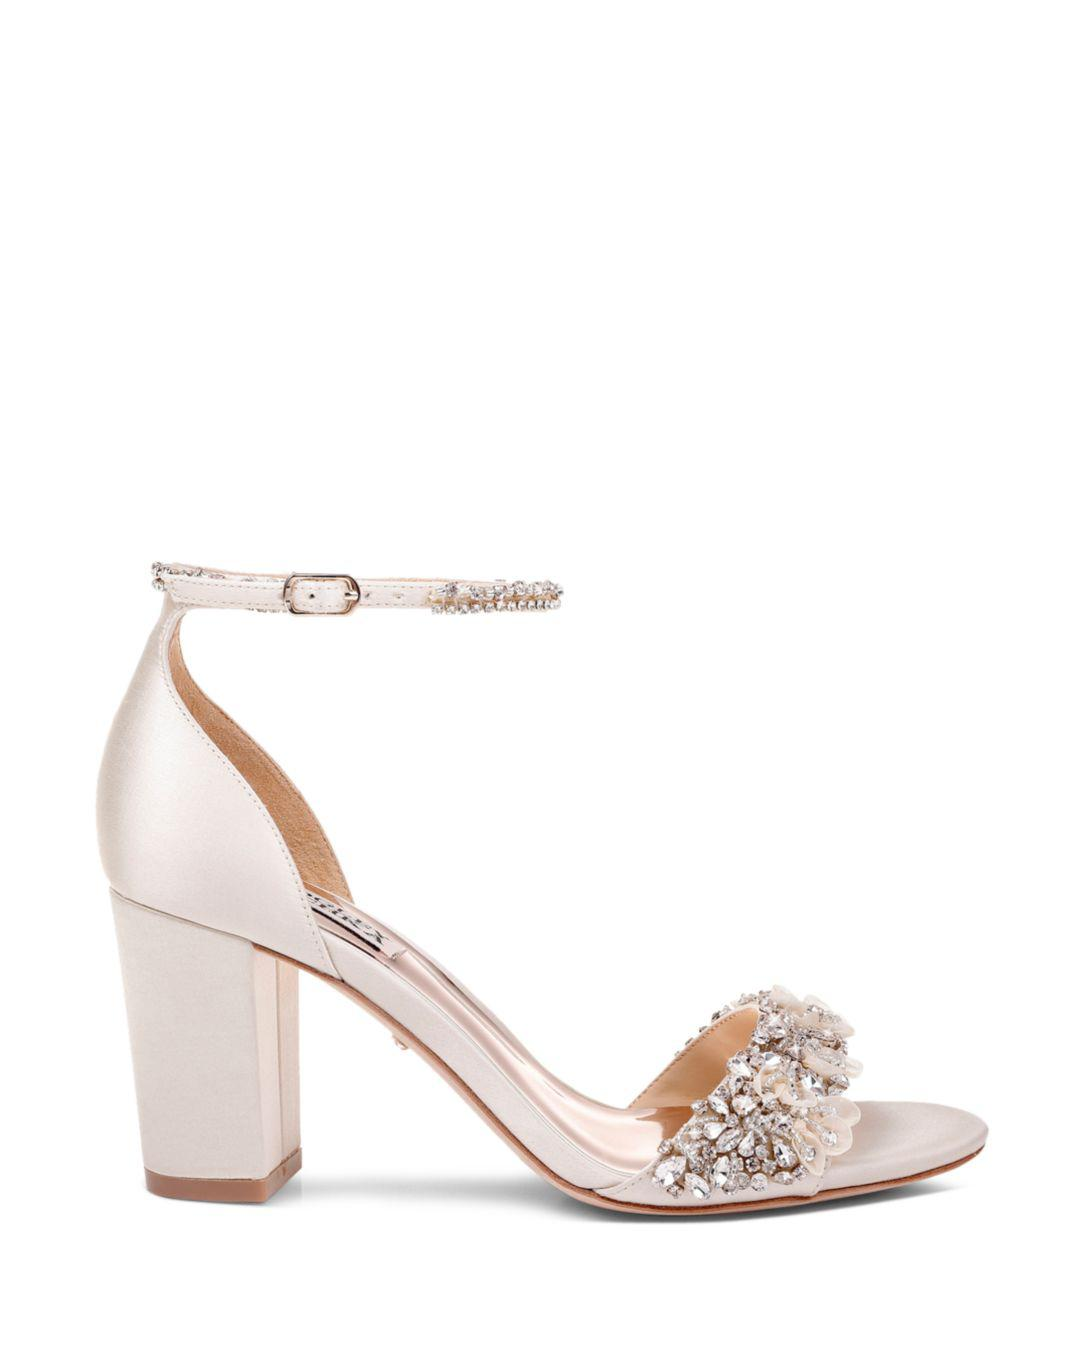 1a5e976a338 Lyst - Badgley Mischka Finesse Evening Sandals in White